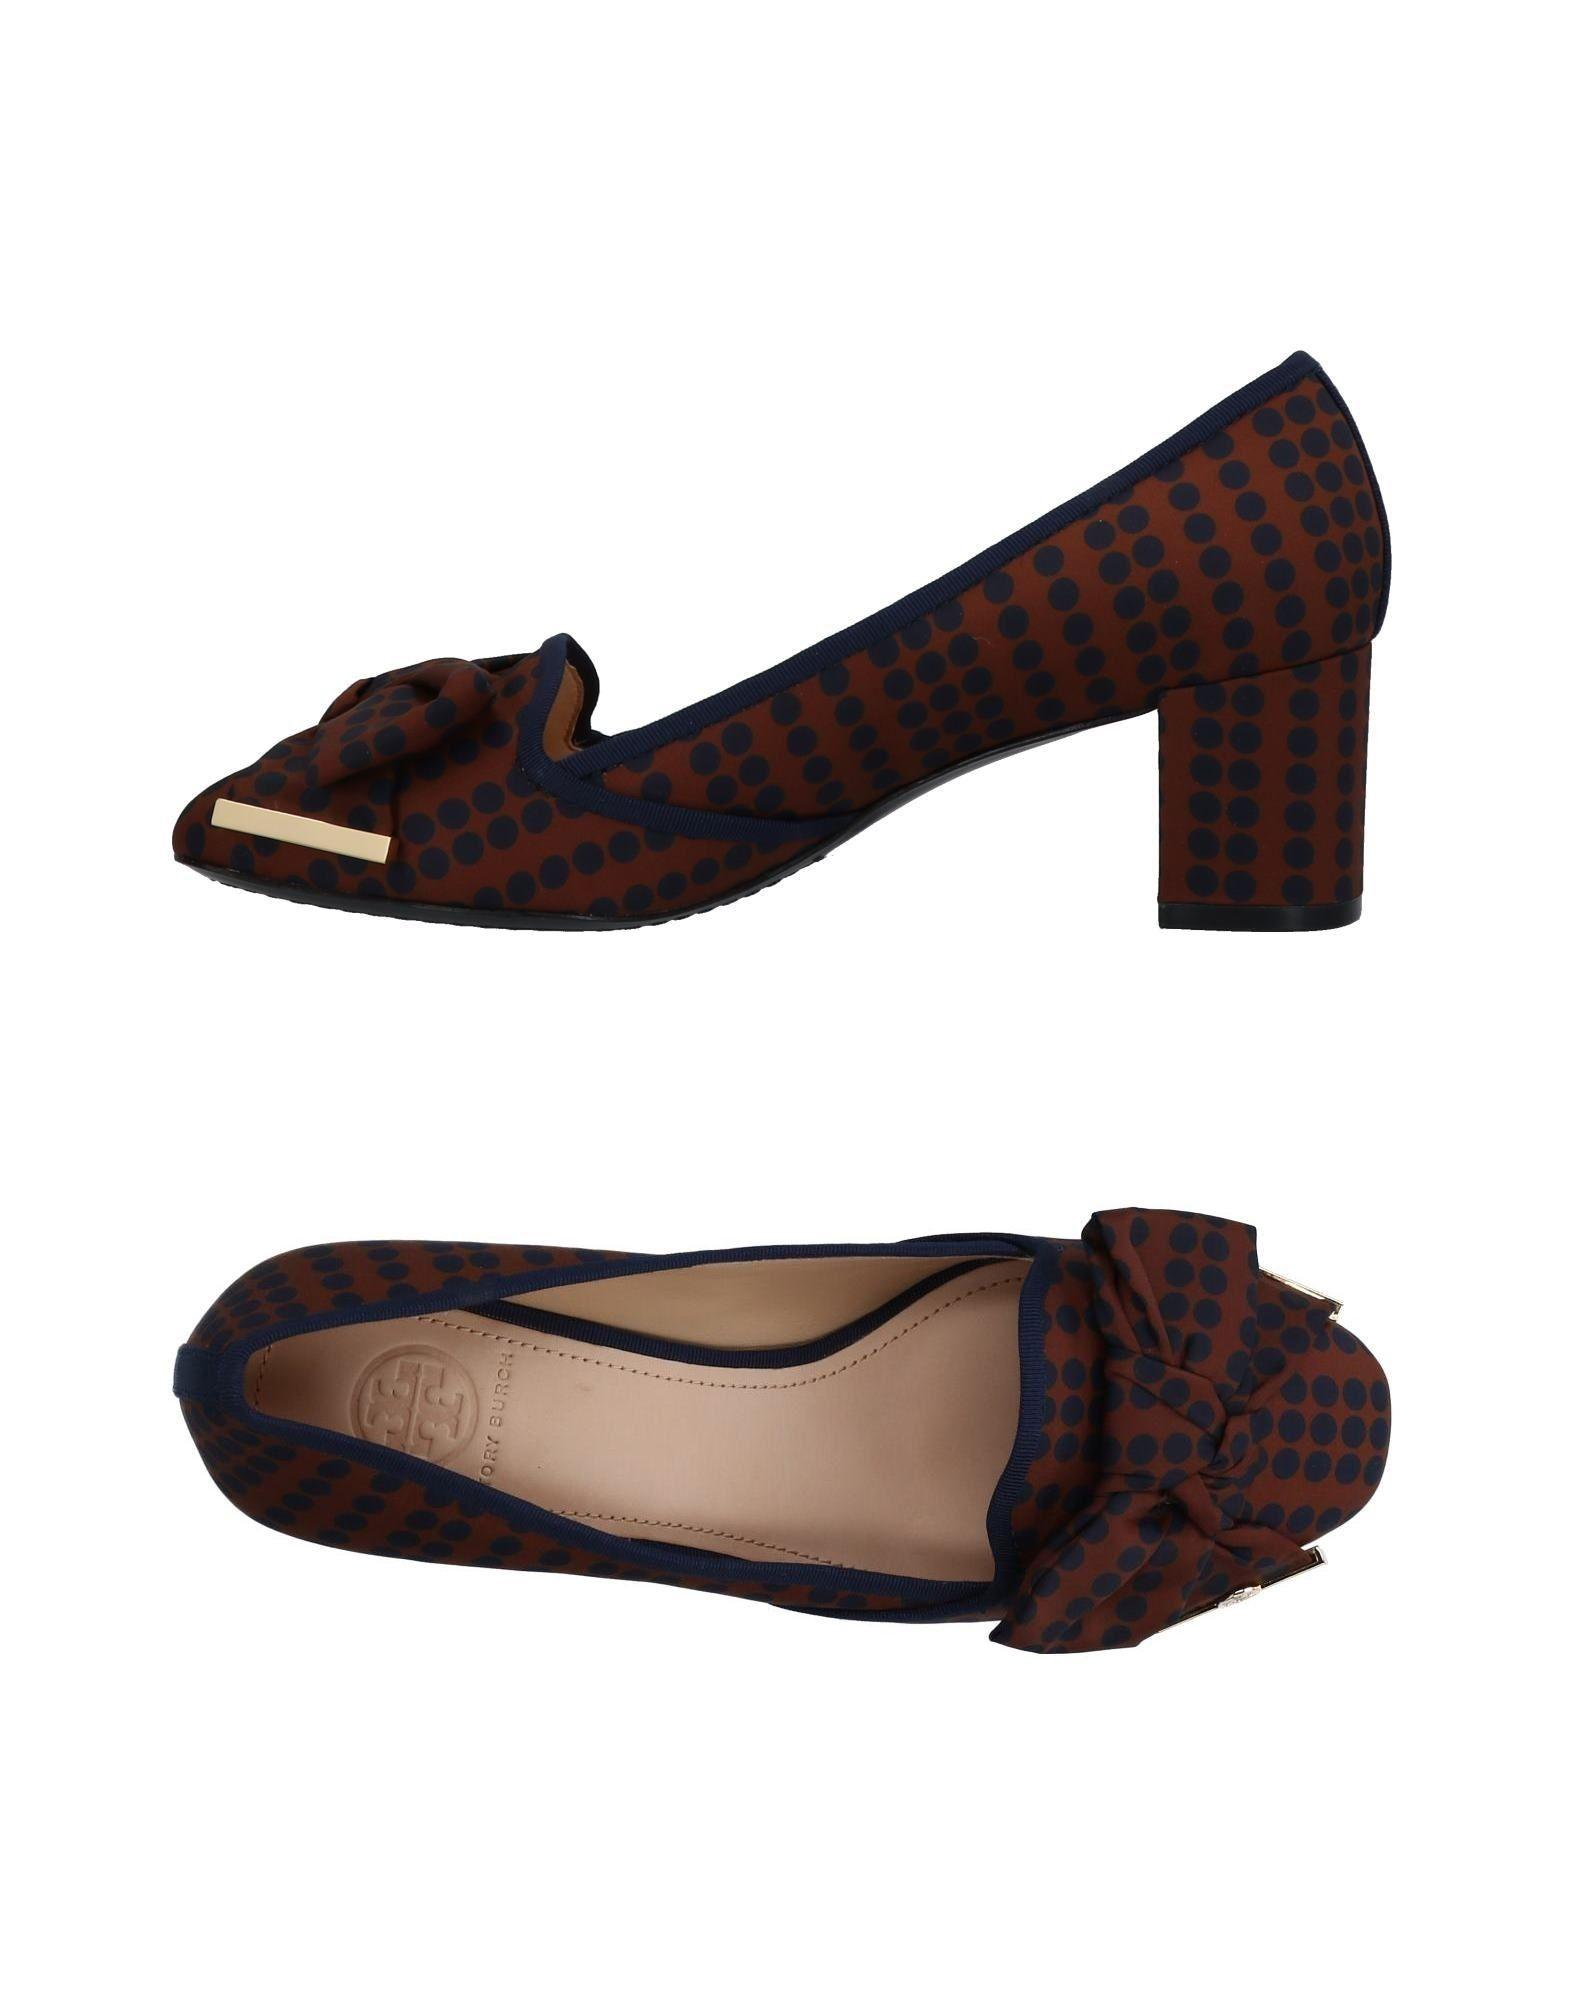 Tory Burch Loafers In Cocoa